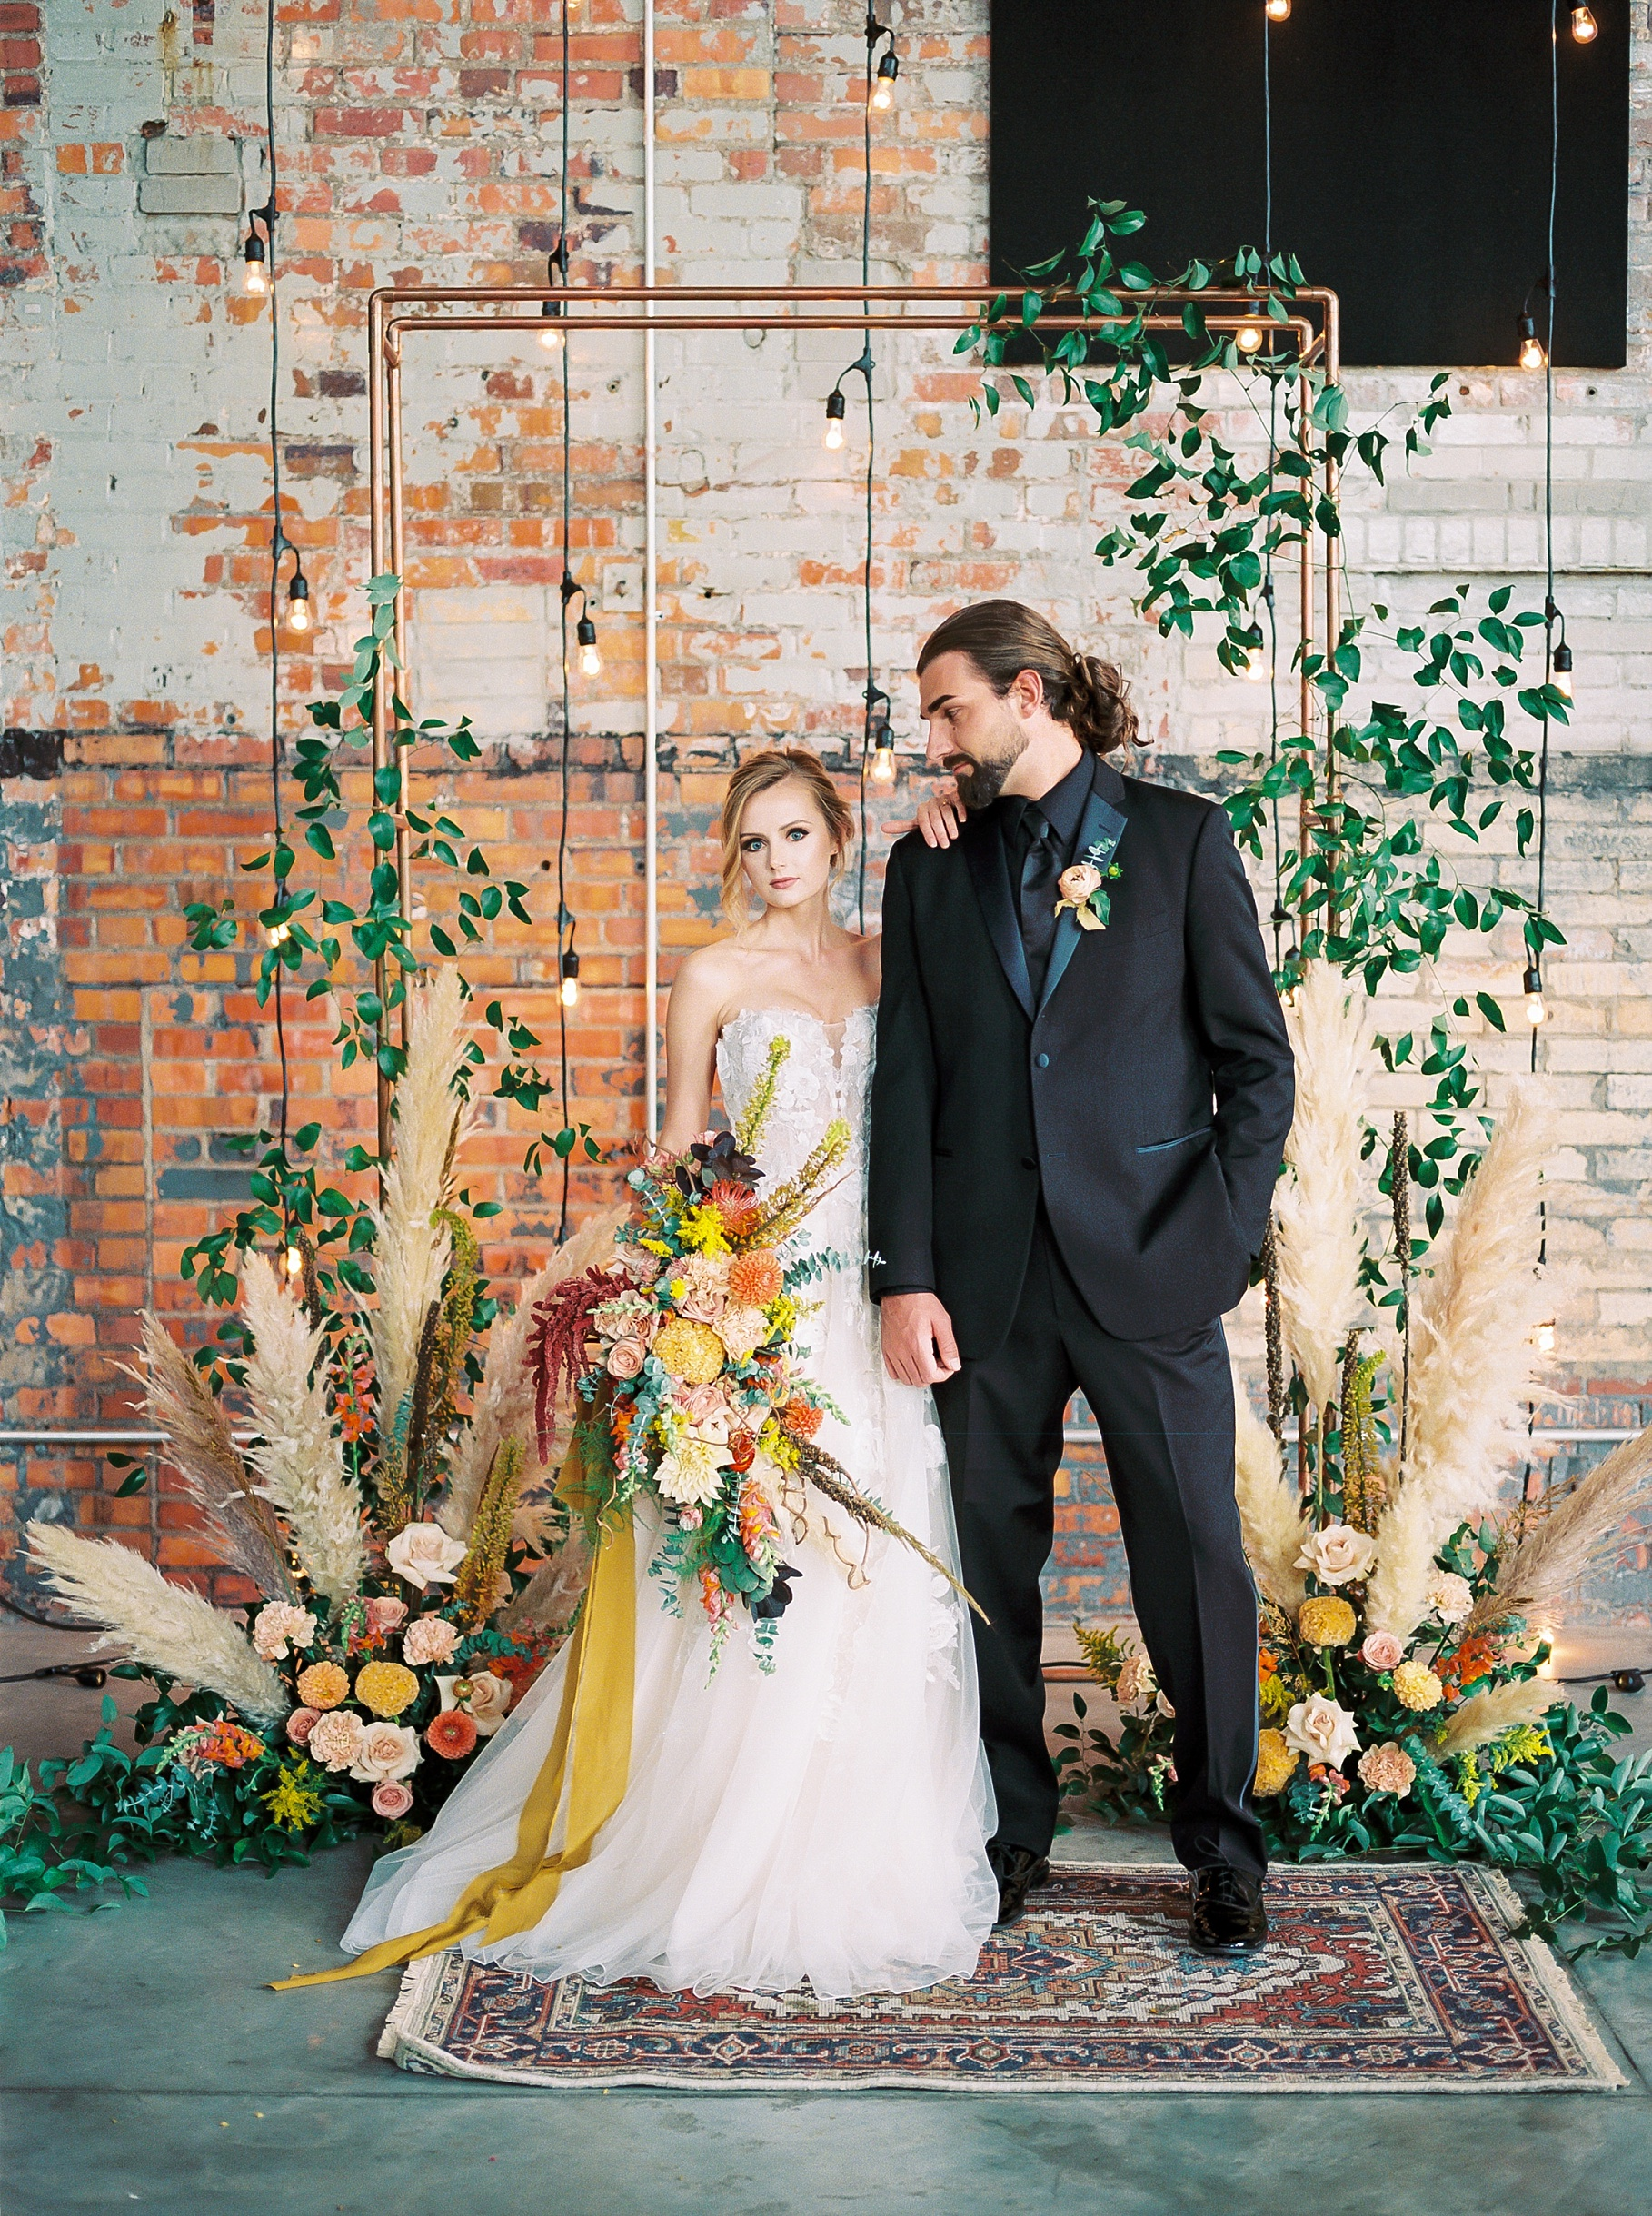 Urban Romance Wedding with Copper Accents at The Millbottom by Kelsi Kliethermes Photography Best Columbia Missouri Wedding Photographer_0067.jpg